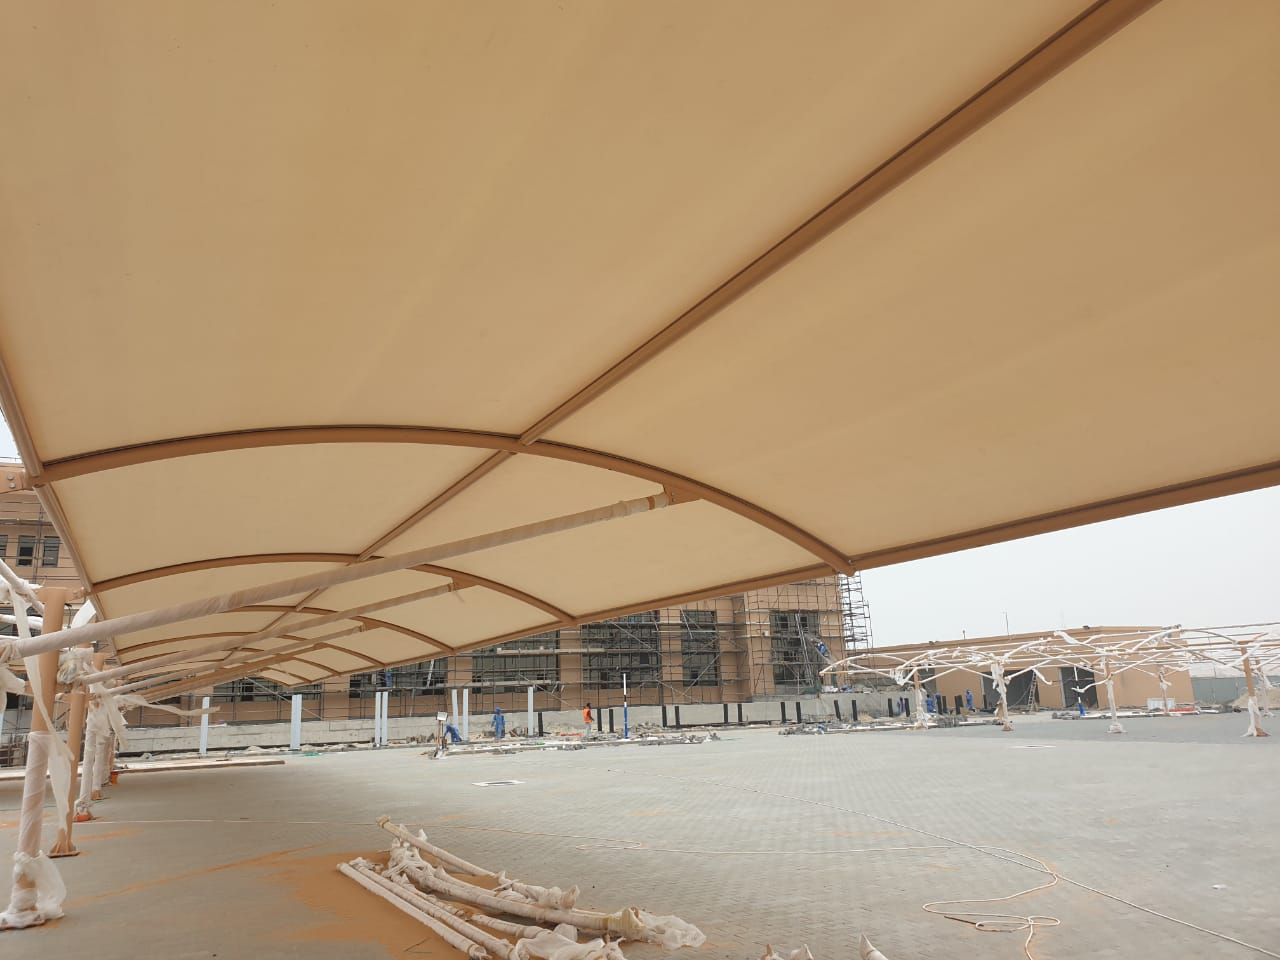 car parking shade abu dhabi